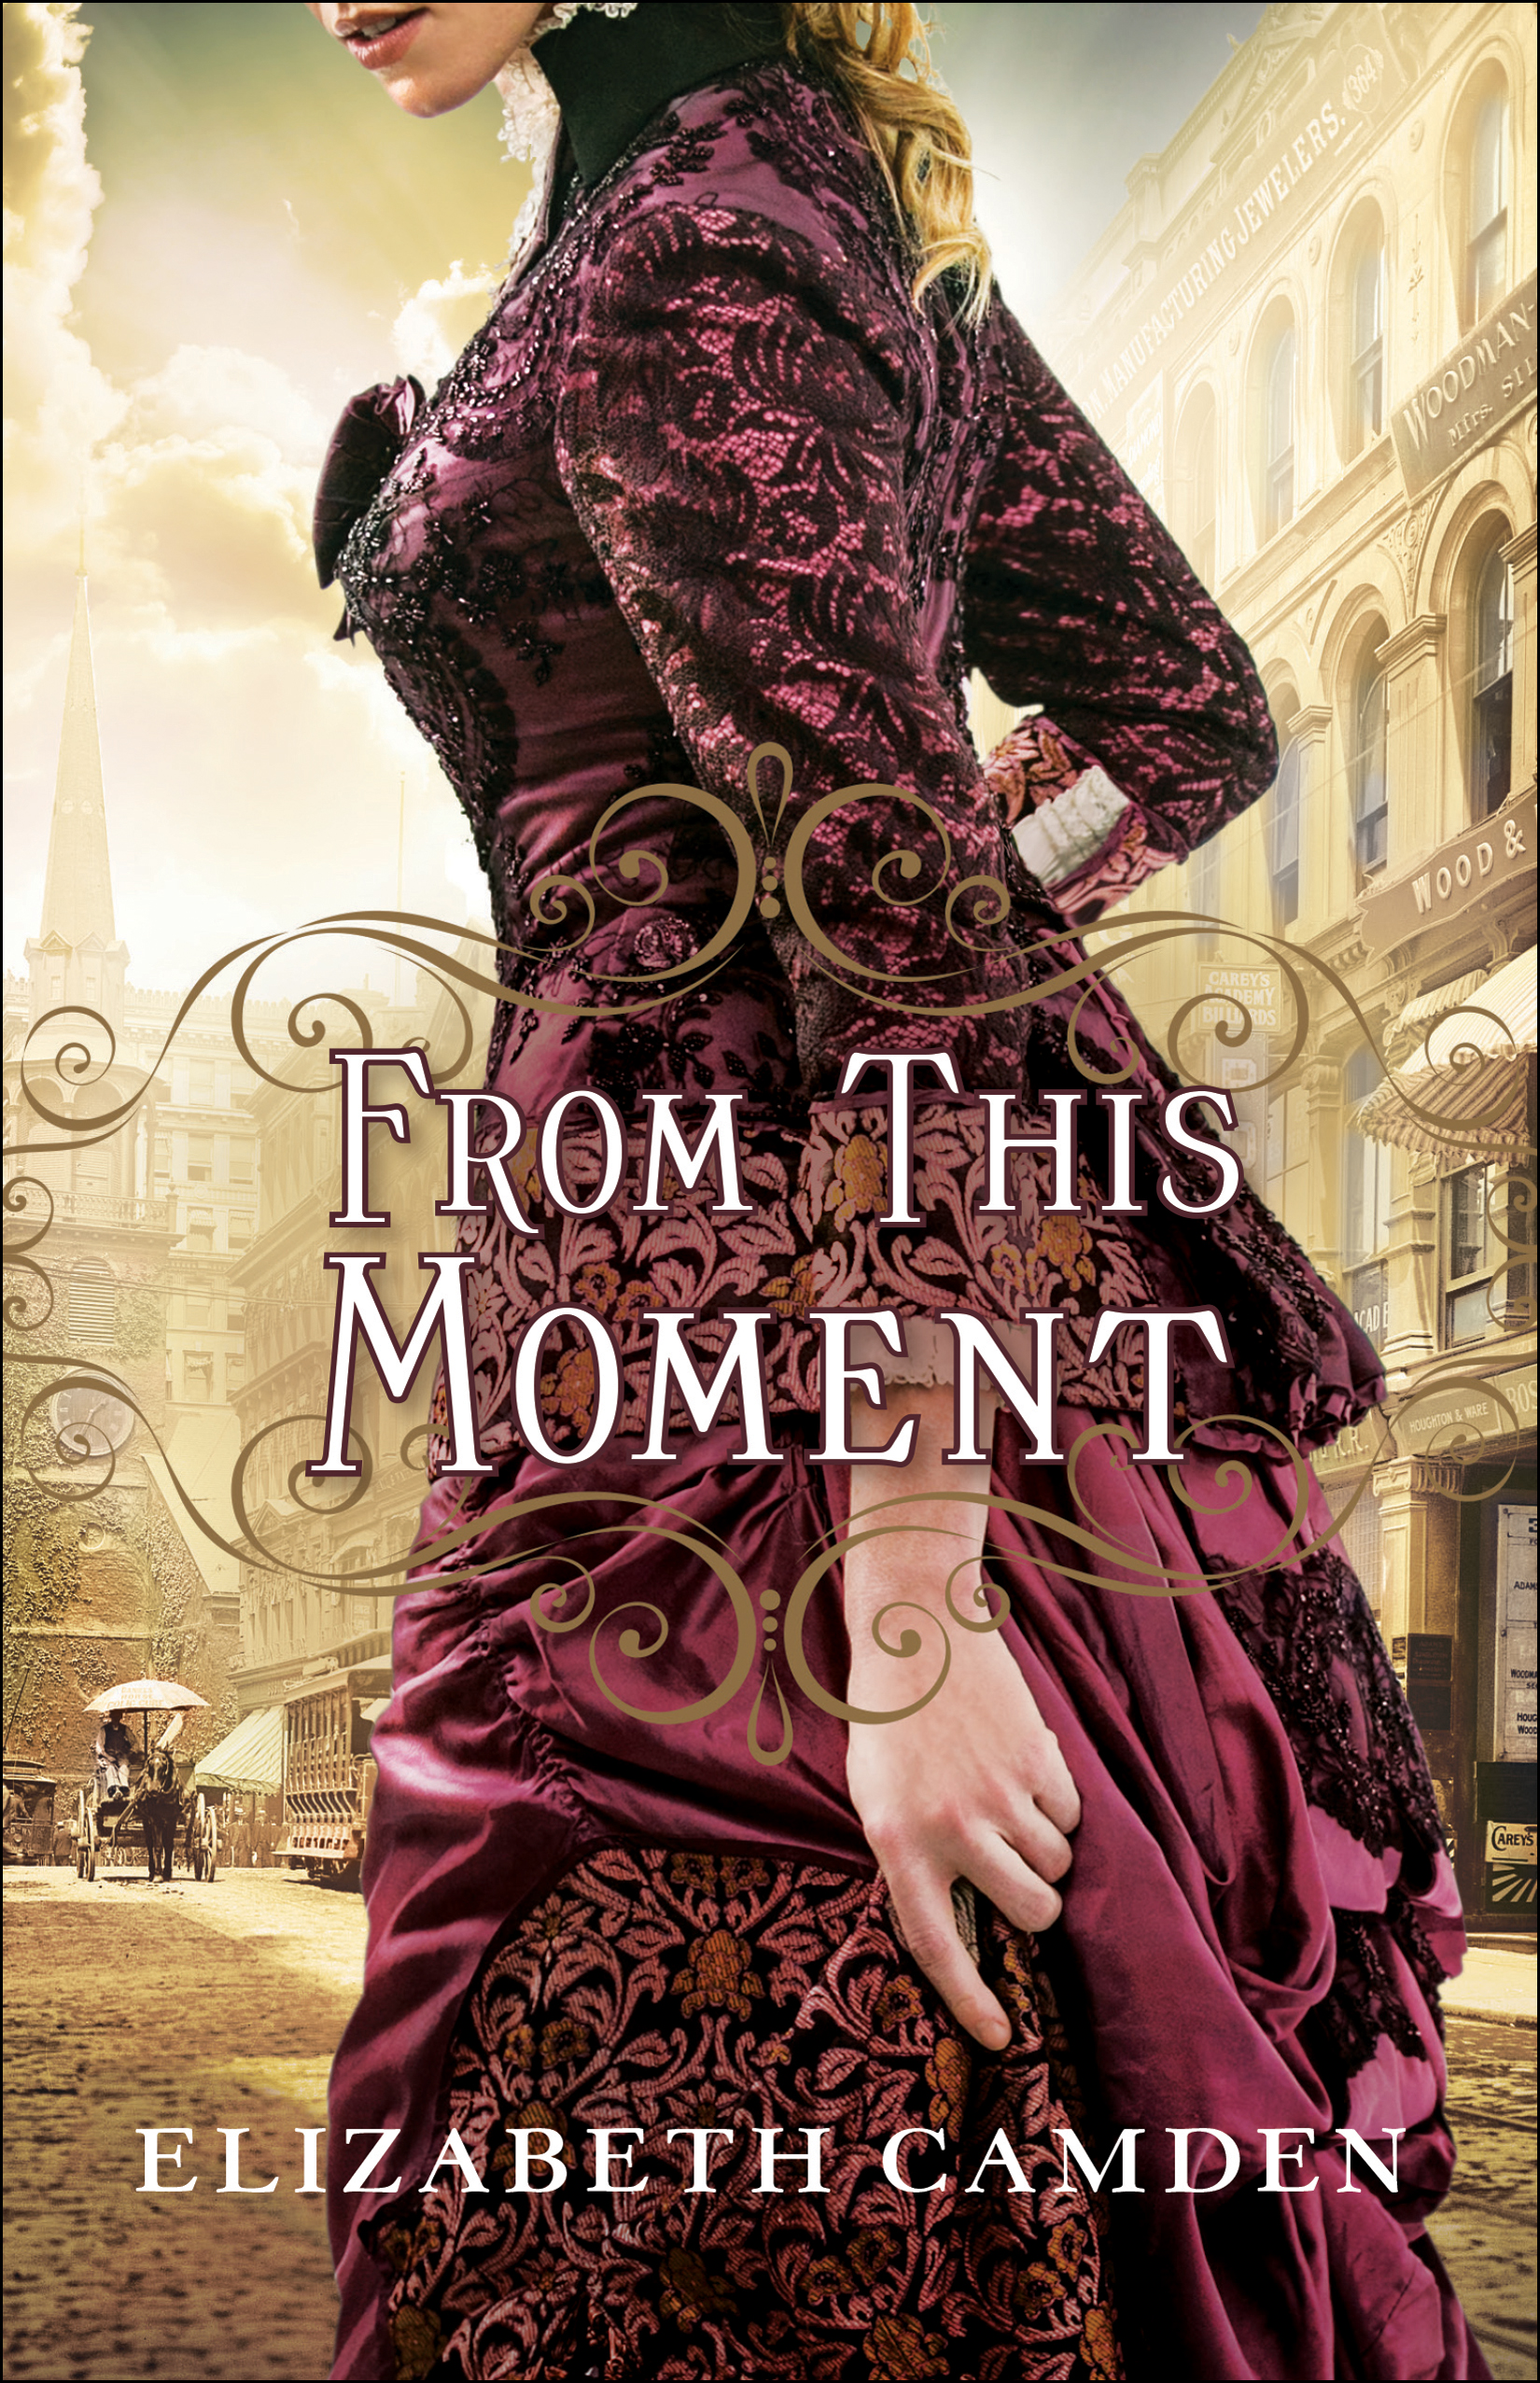 Book review of From This Moment by Elizabeth Camden (Bethany House) by papertapepins